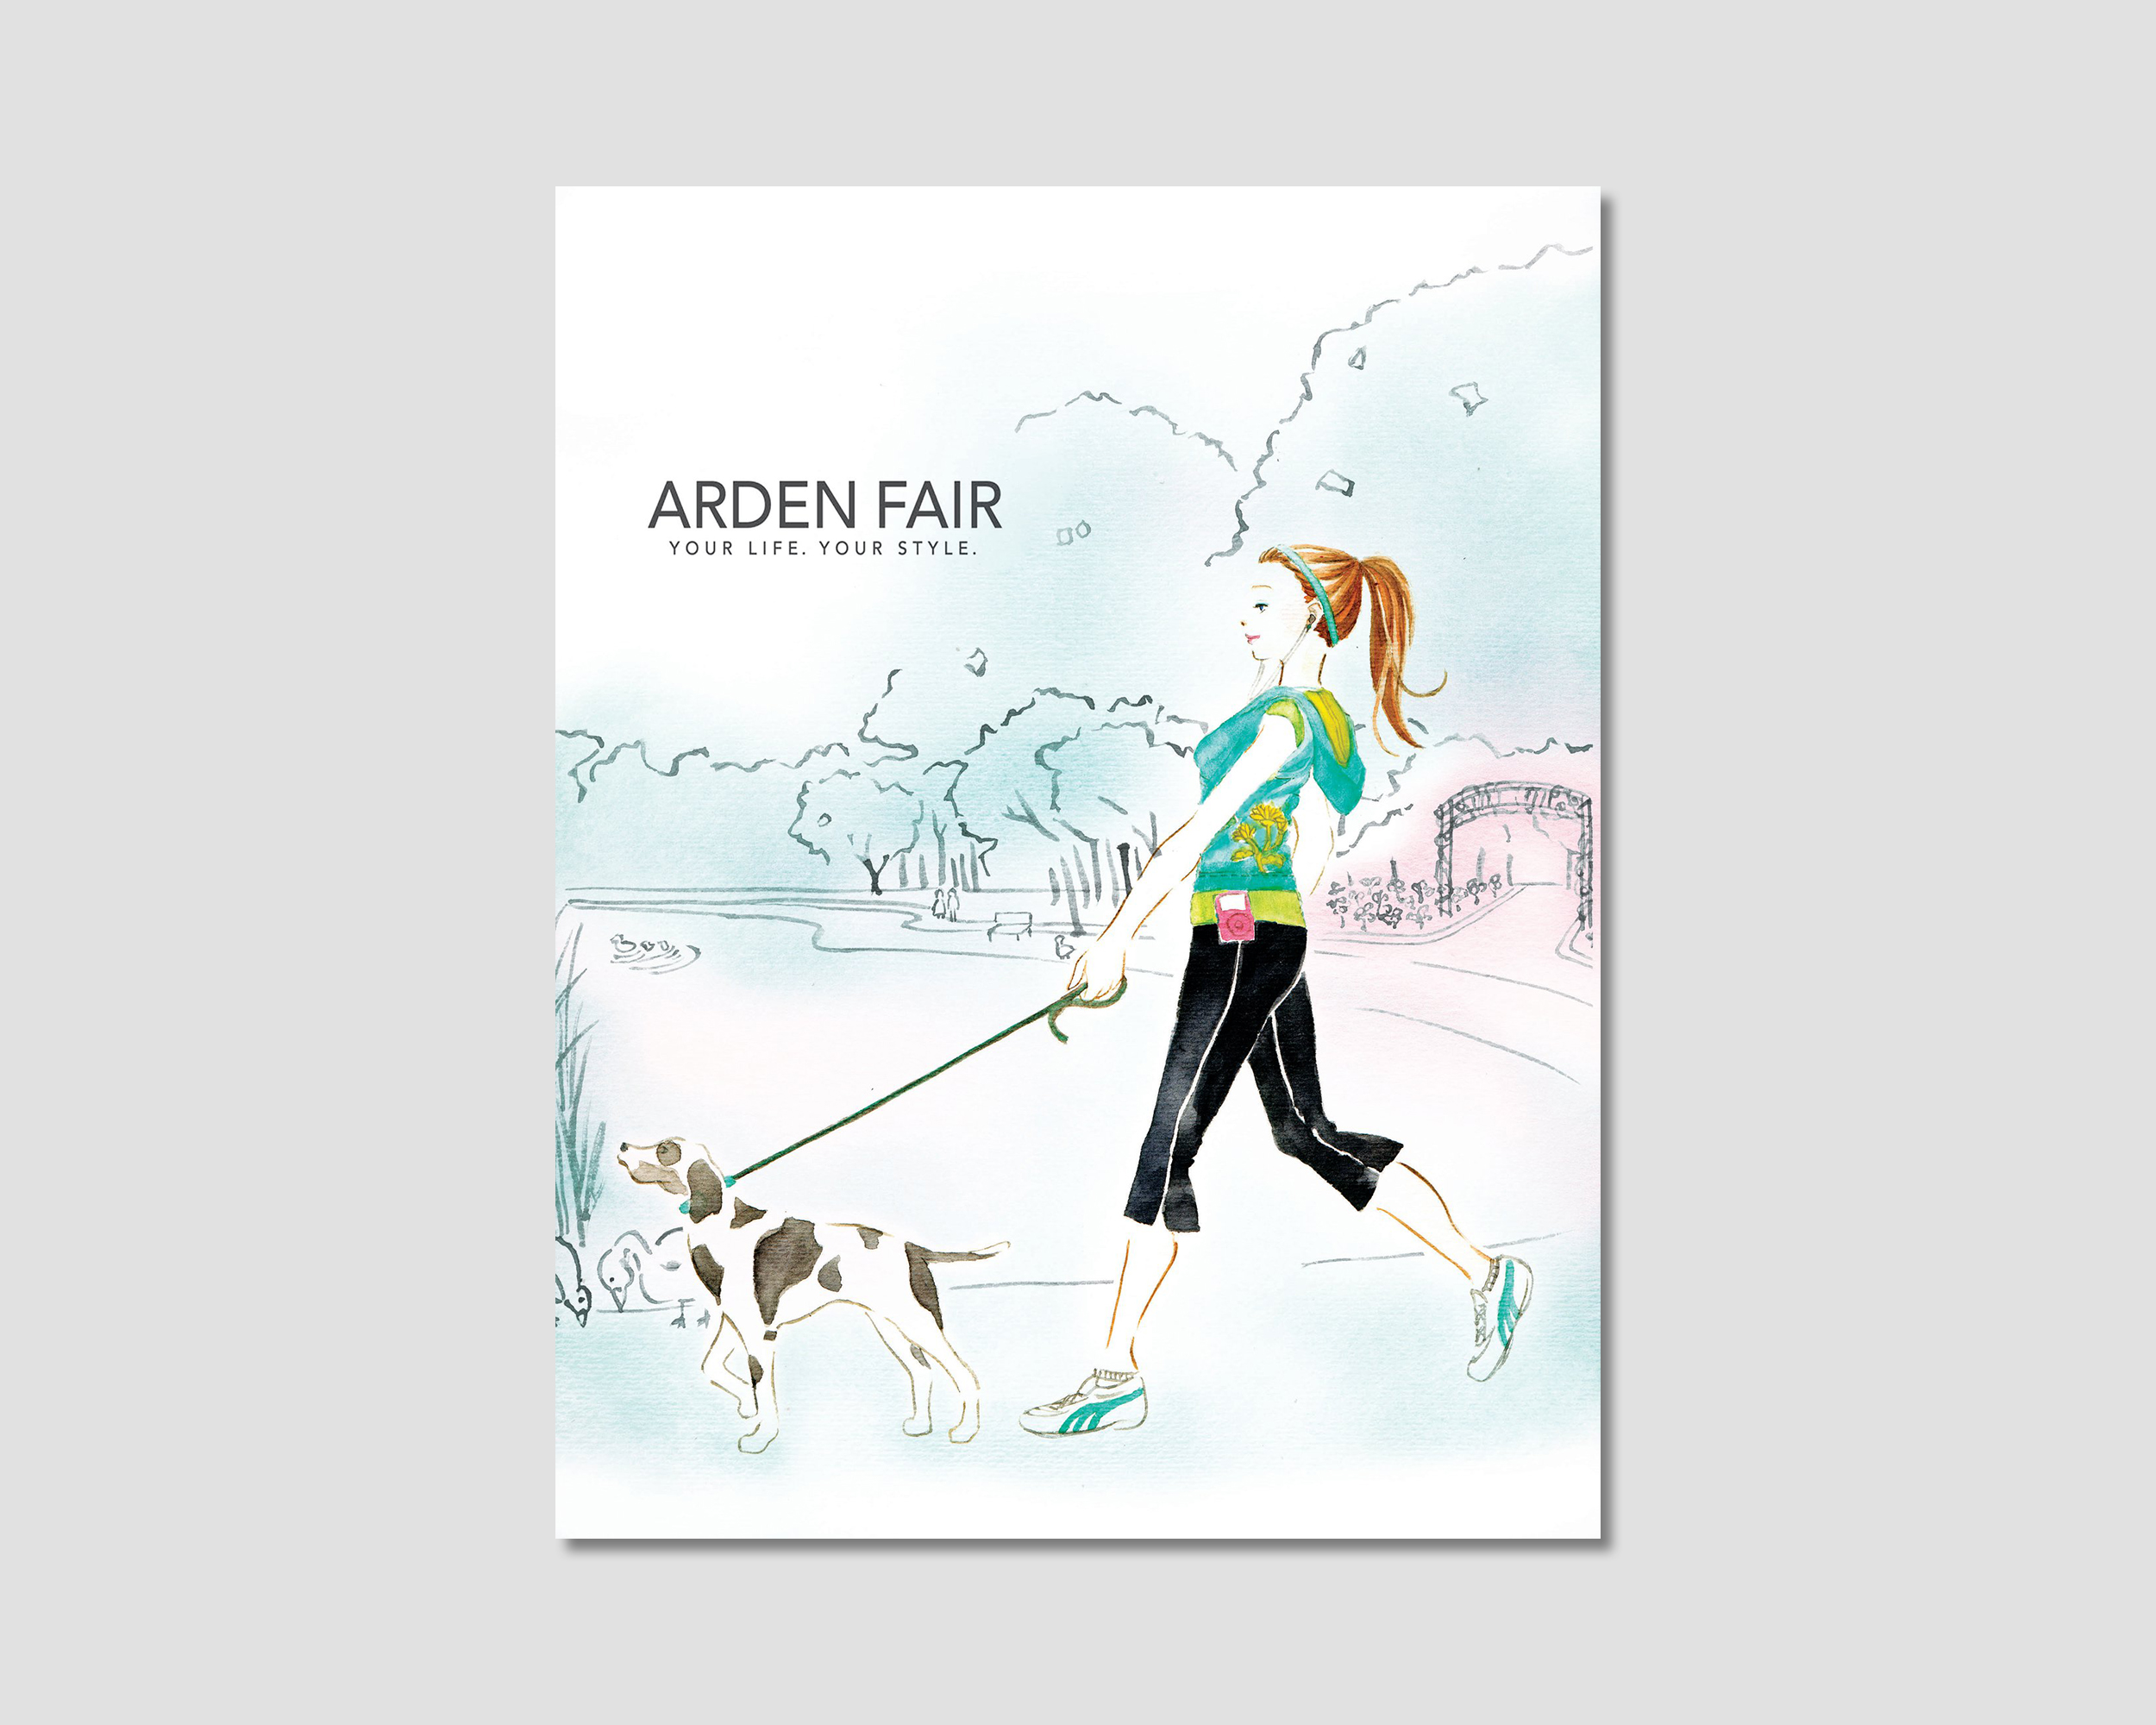 Arden Fair Mall Illustration and Print Ad